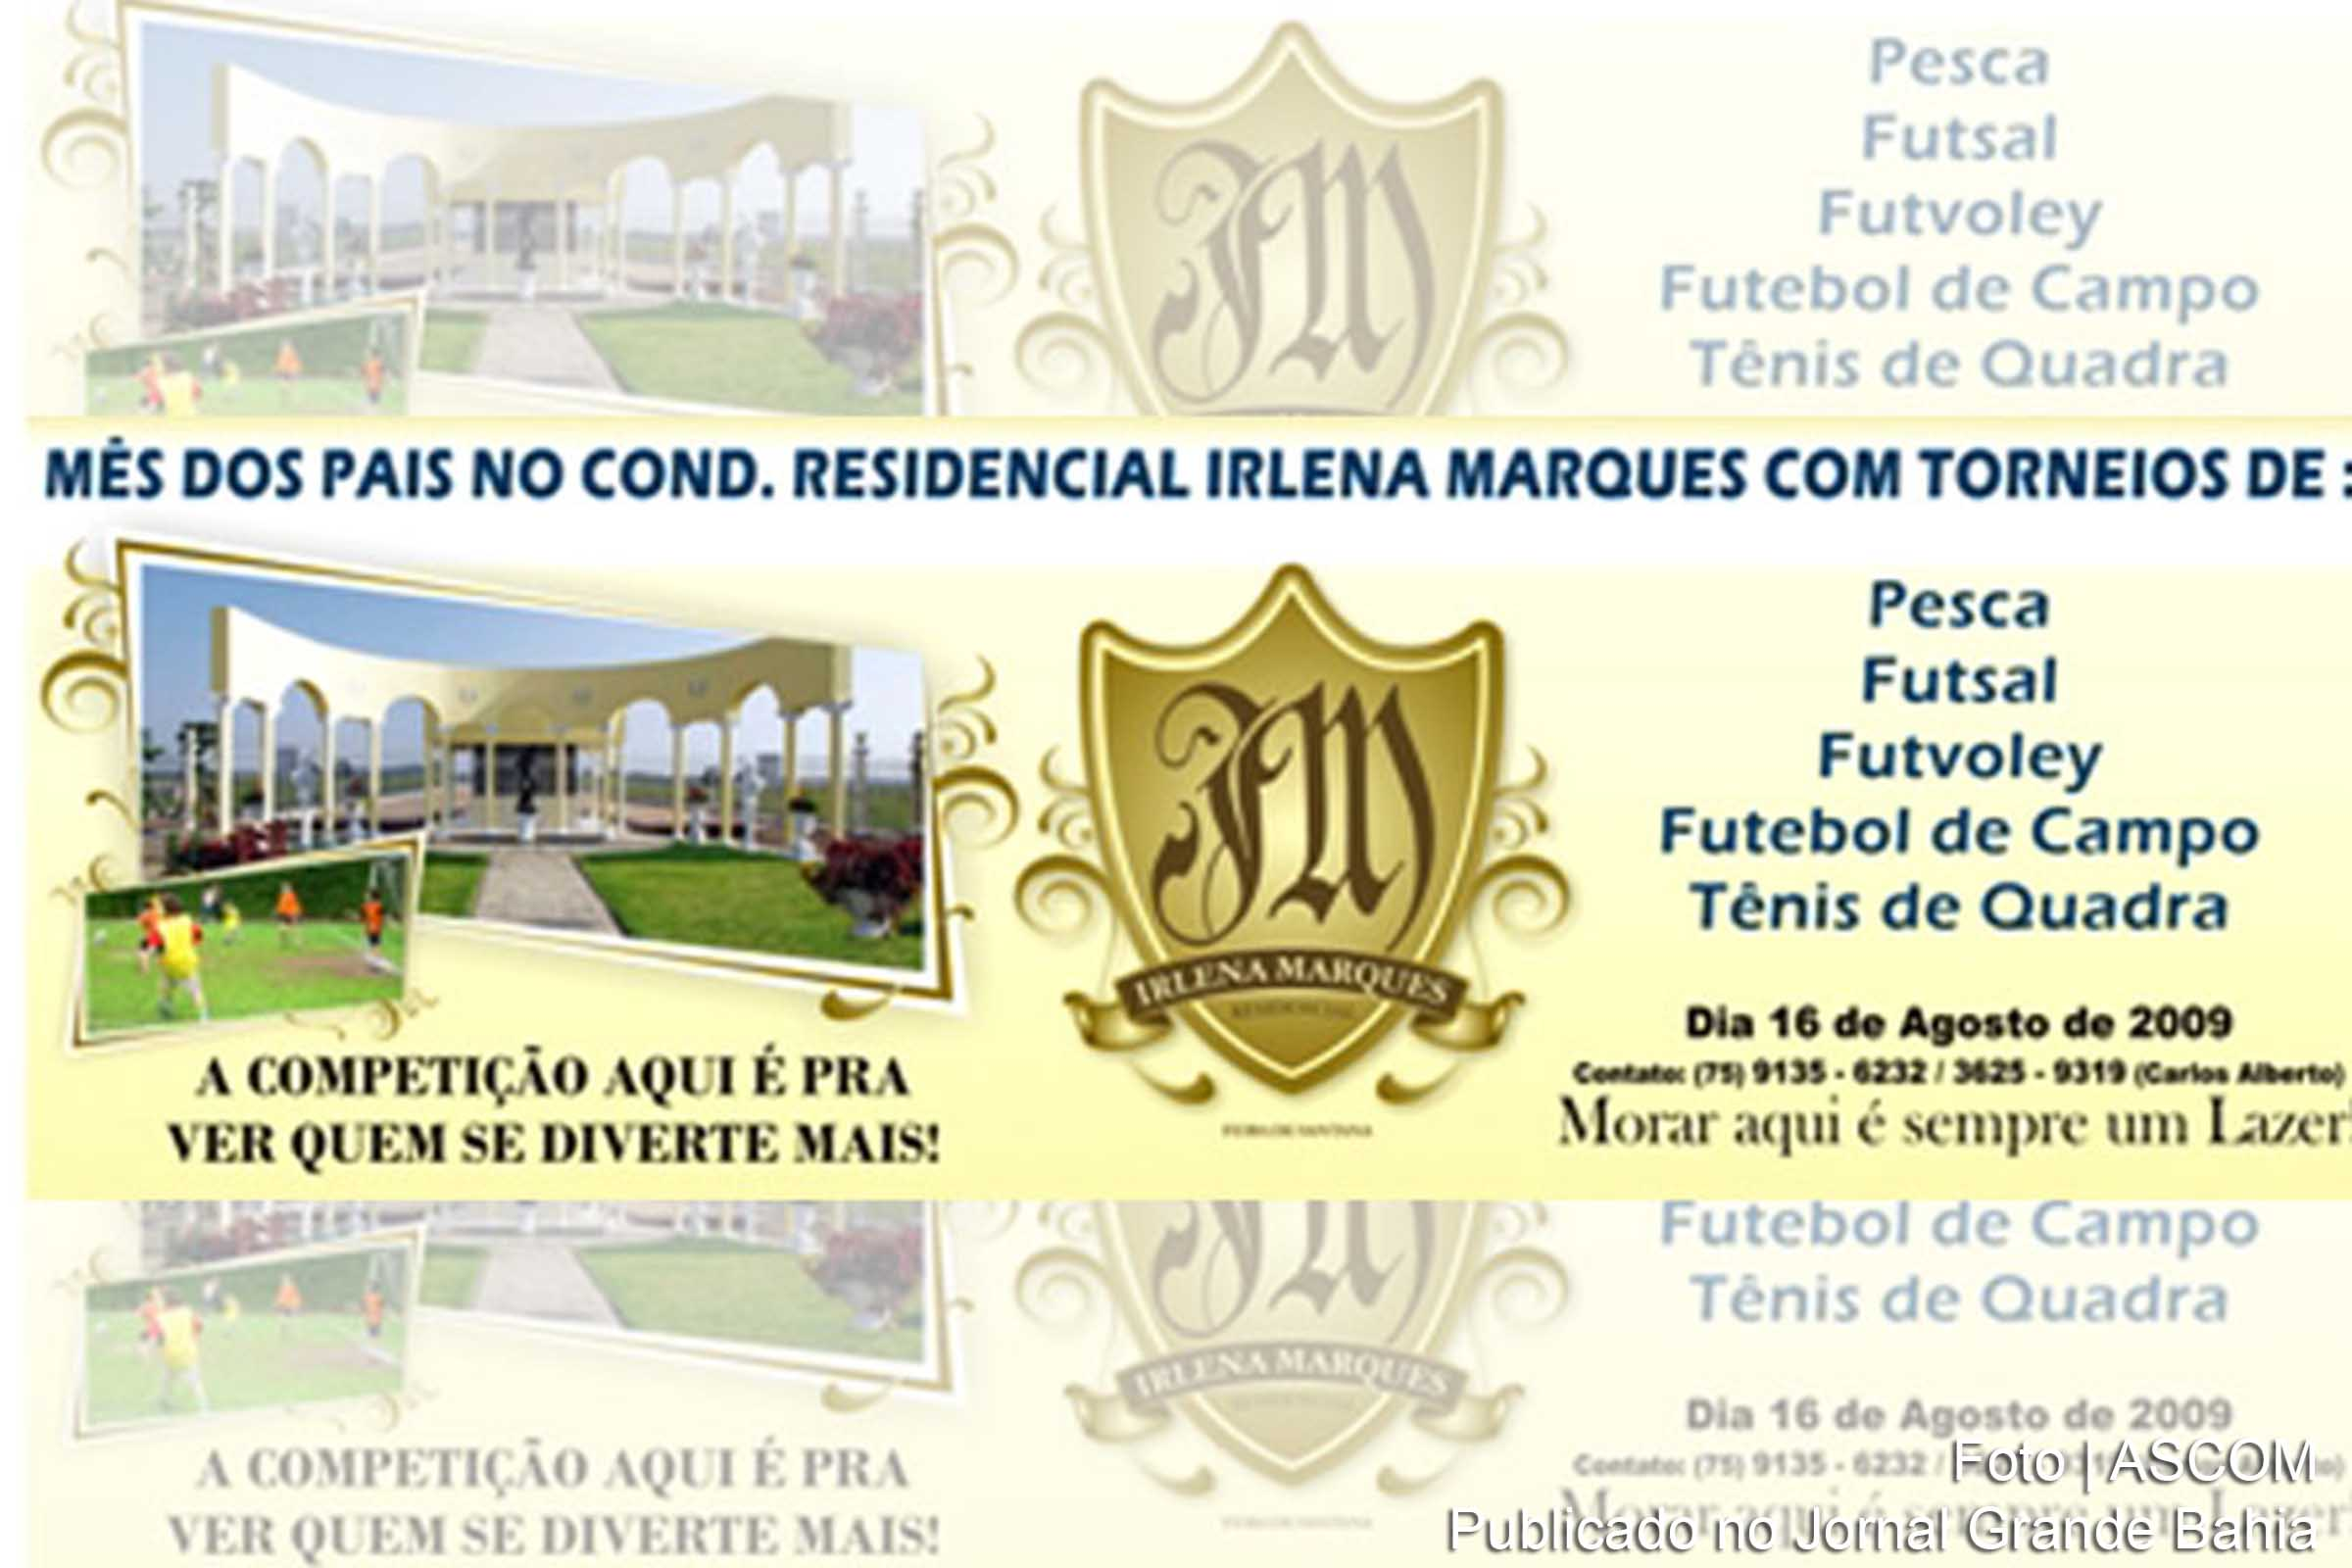 Residencial Irlena Marques.